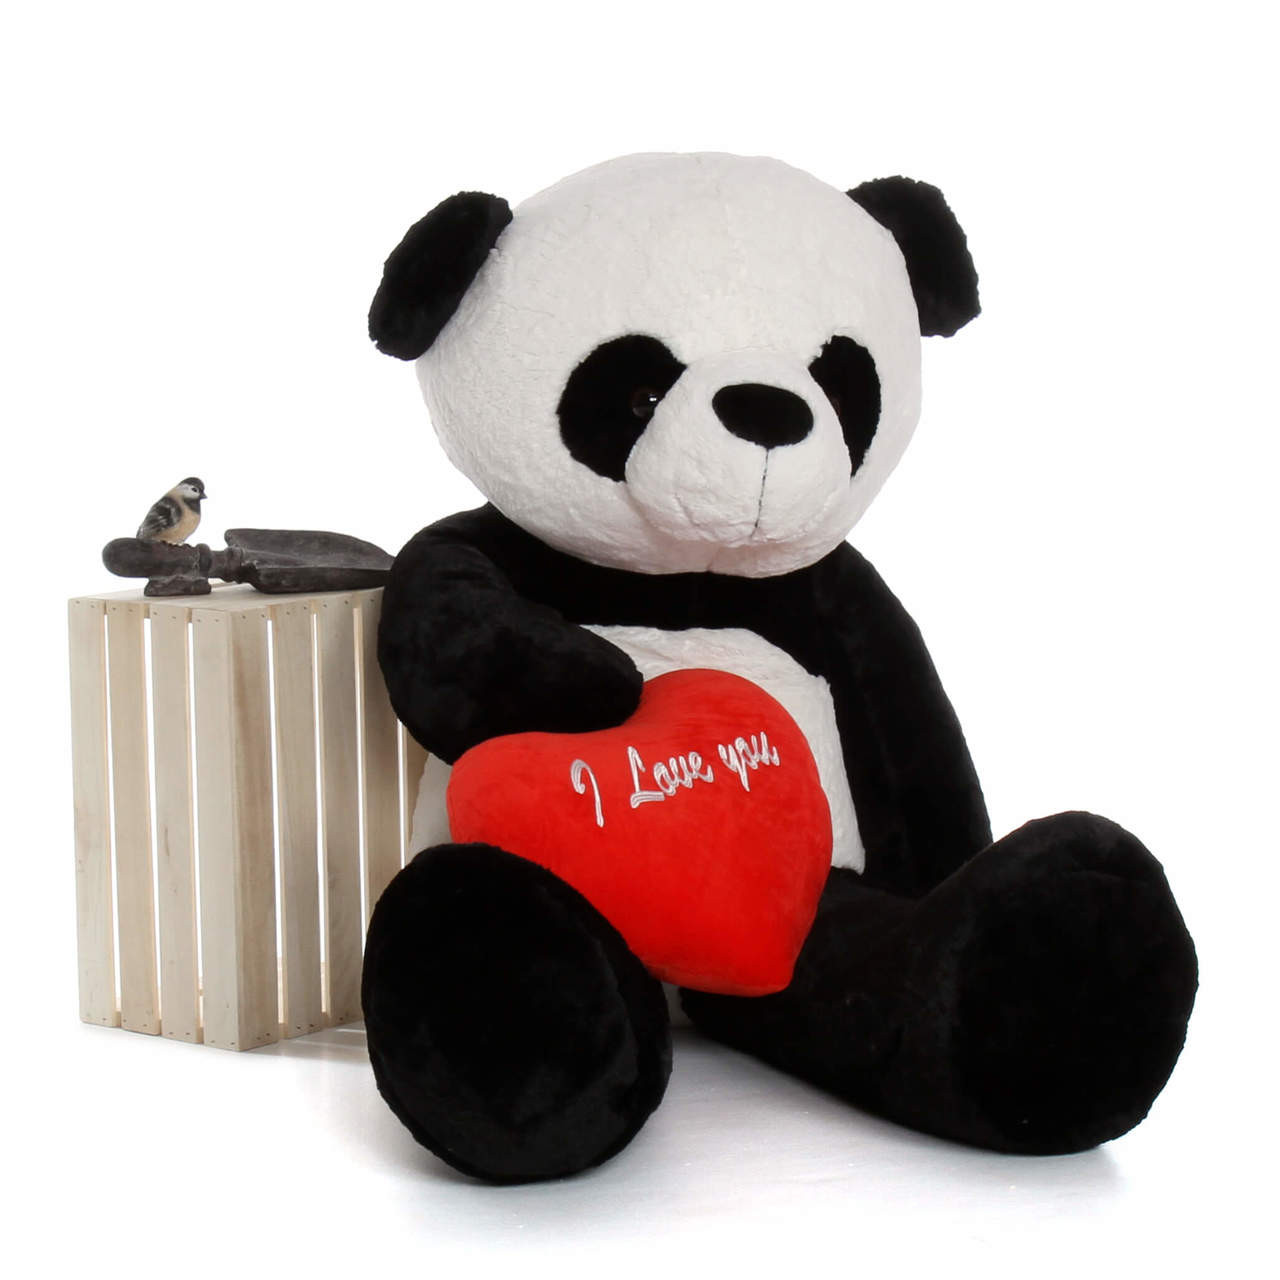 "5ft Valentine Life-Size Panda Bear Precious Xiong wred ""I Love You"" heart"